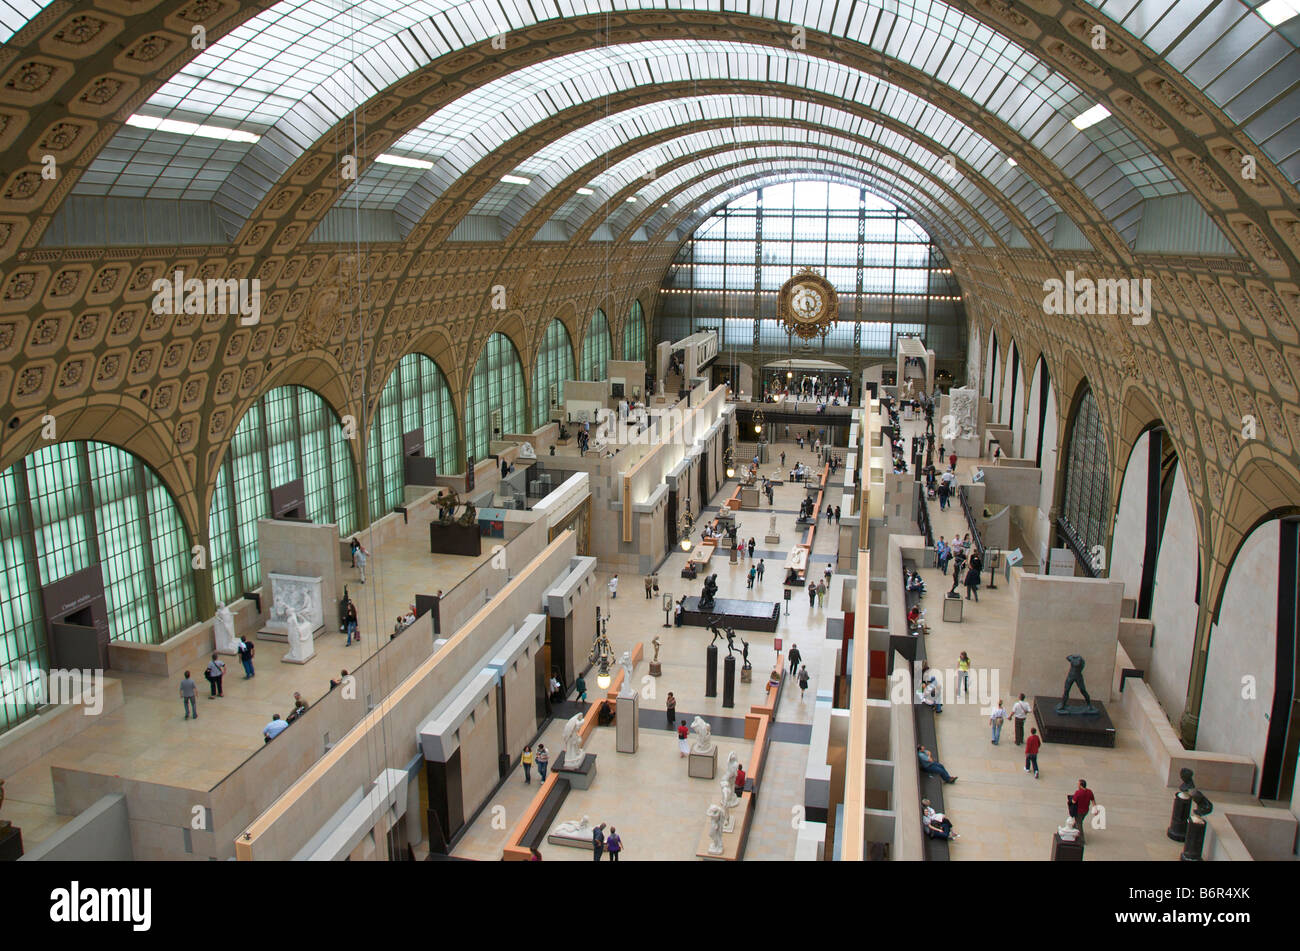 Musee d'Orsay, Orsay Museum, Paris, France, Europe - Stock Image